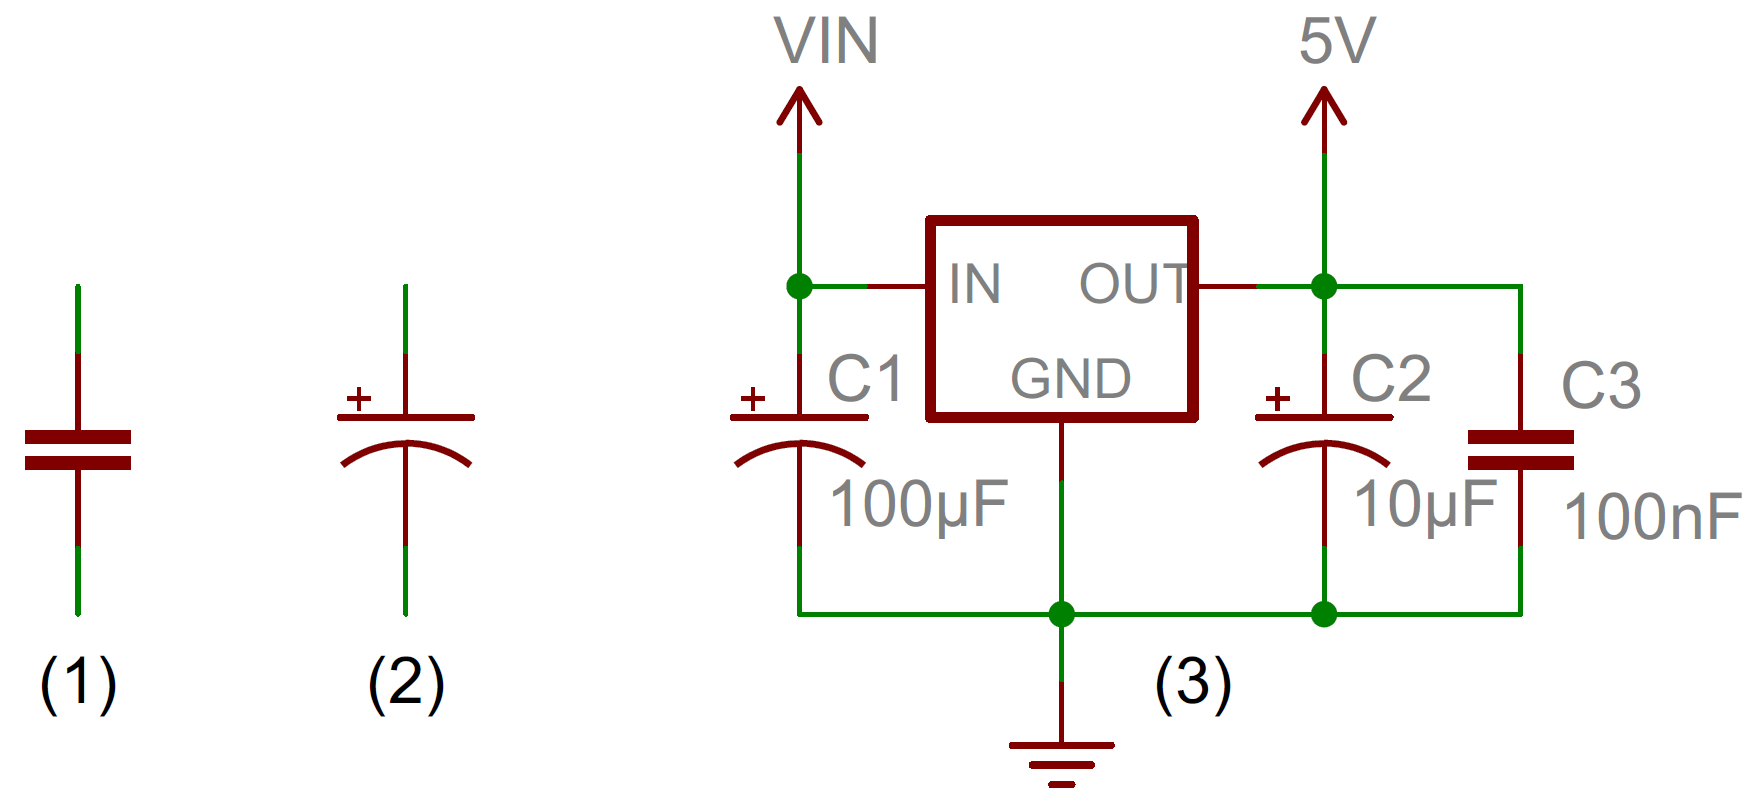 hight resolution of capacitors learn sparkfun com wiring diagram for capacitor start capacitor run motor capacitor circuit symbols